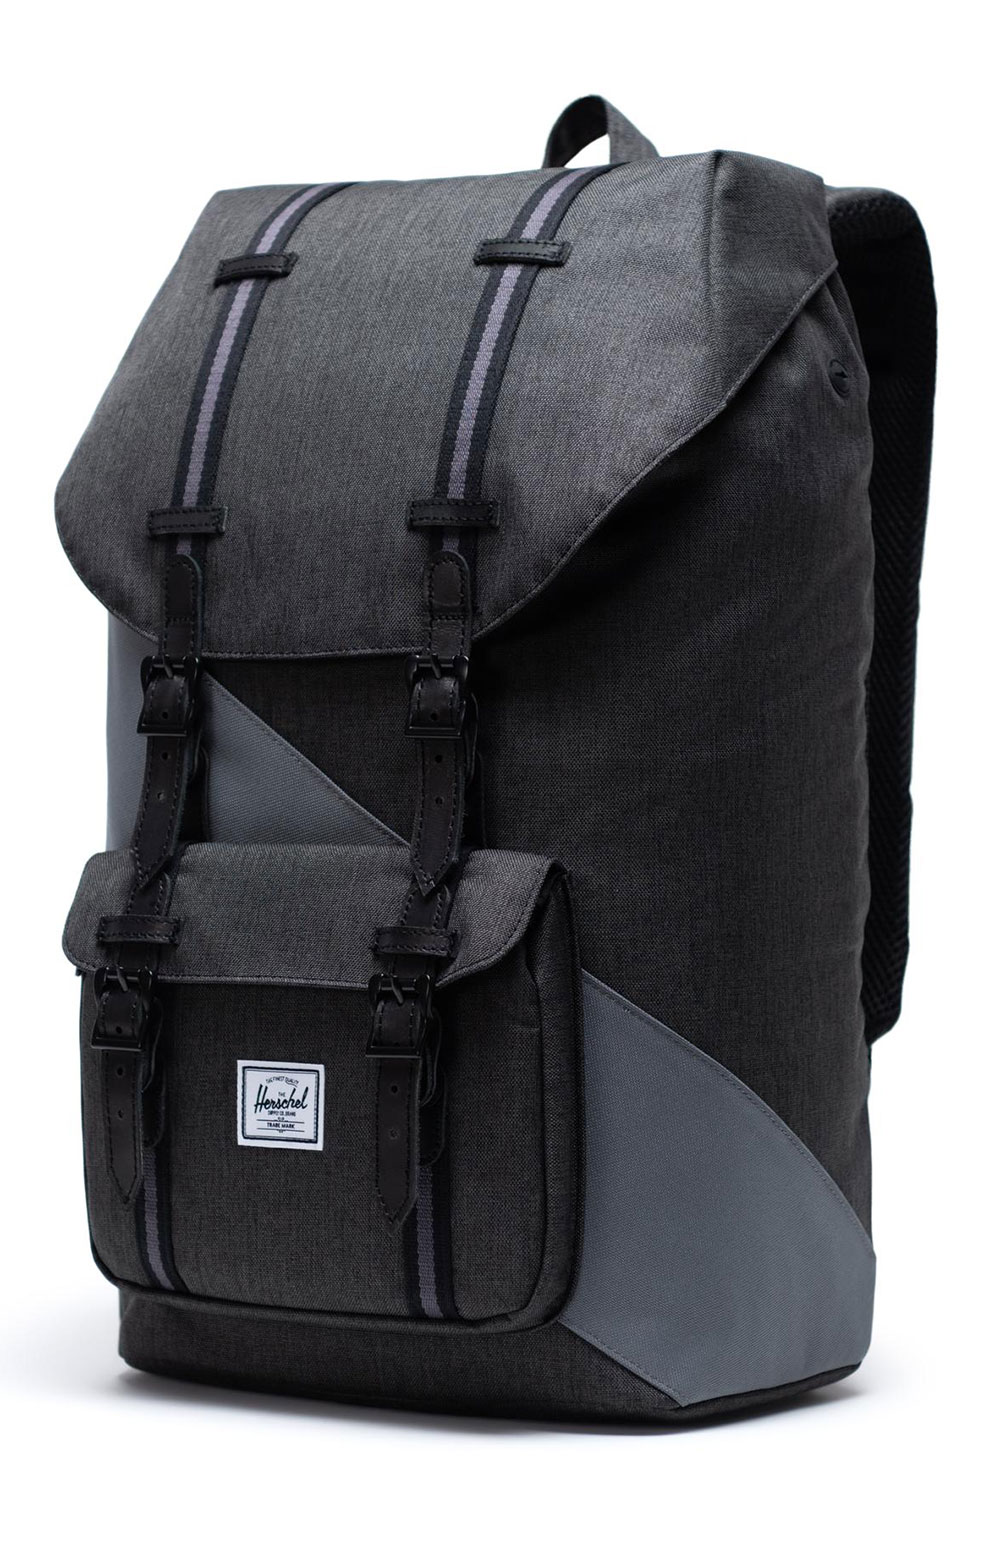 Little America Backpack - Black X/Quiet Shade/Periscope  3